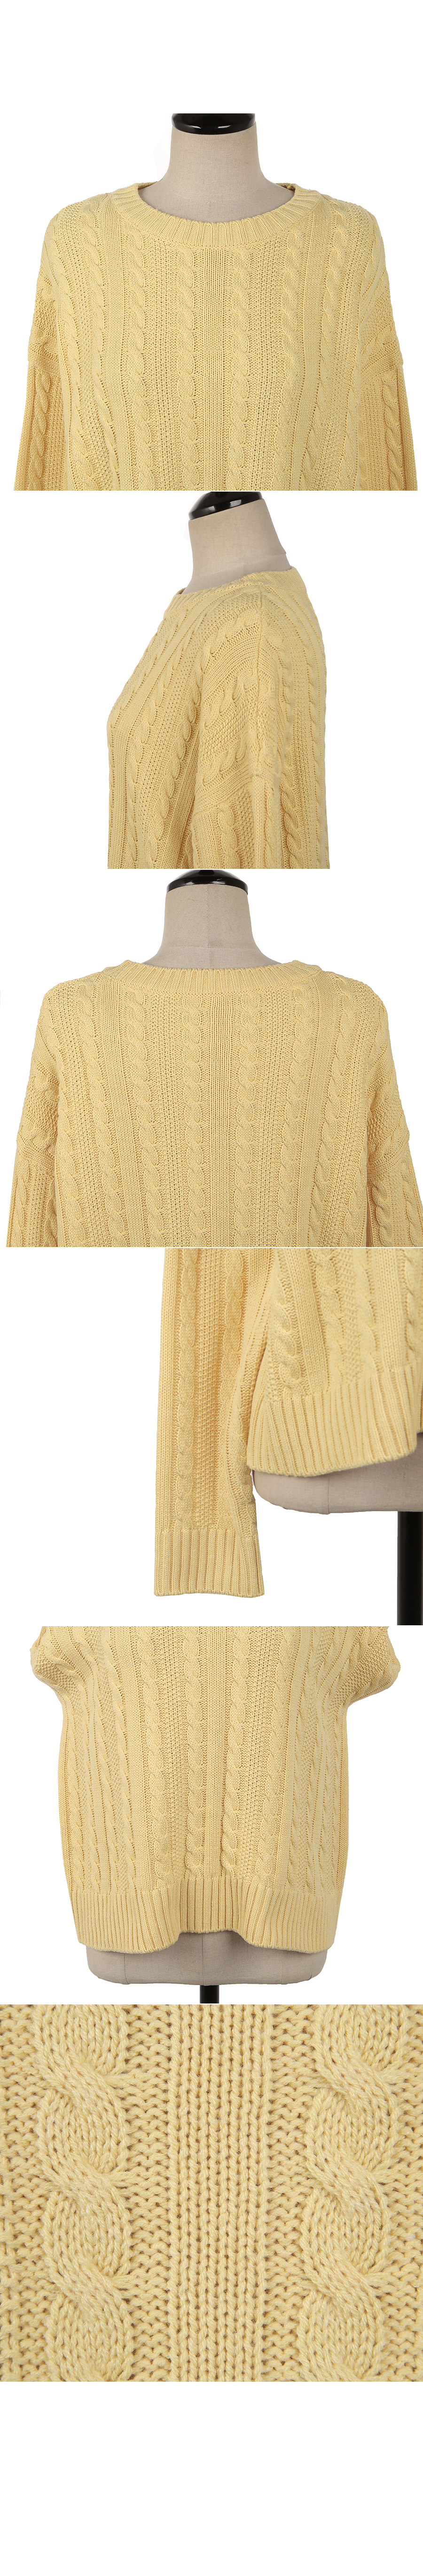 Daily snip knit yellow